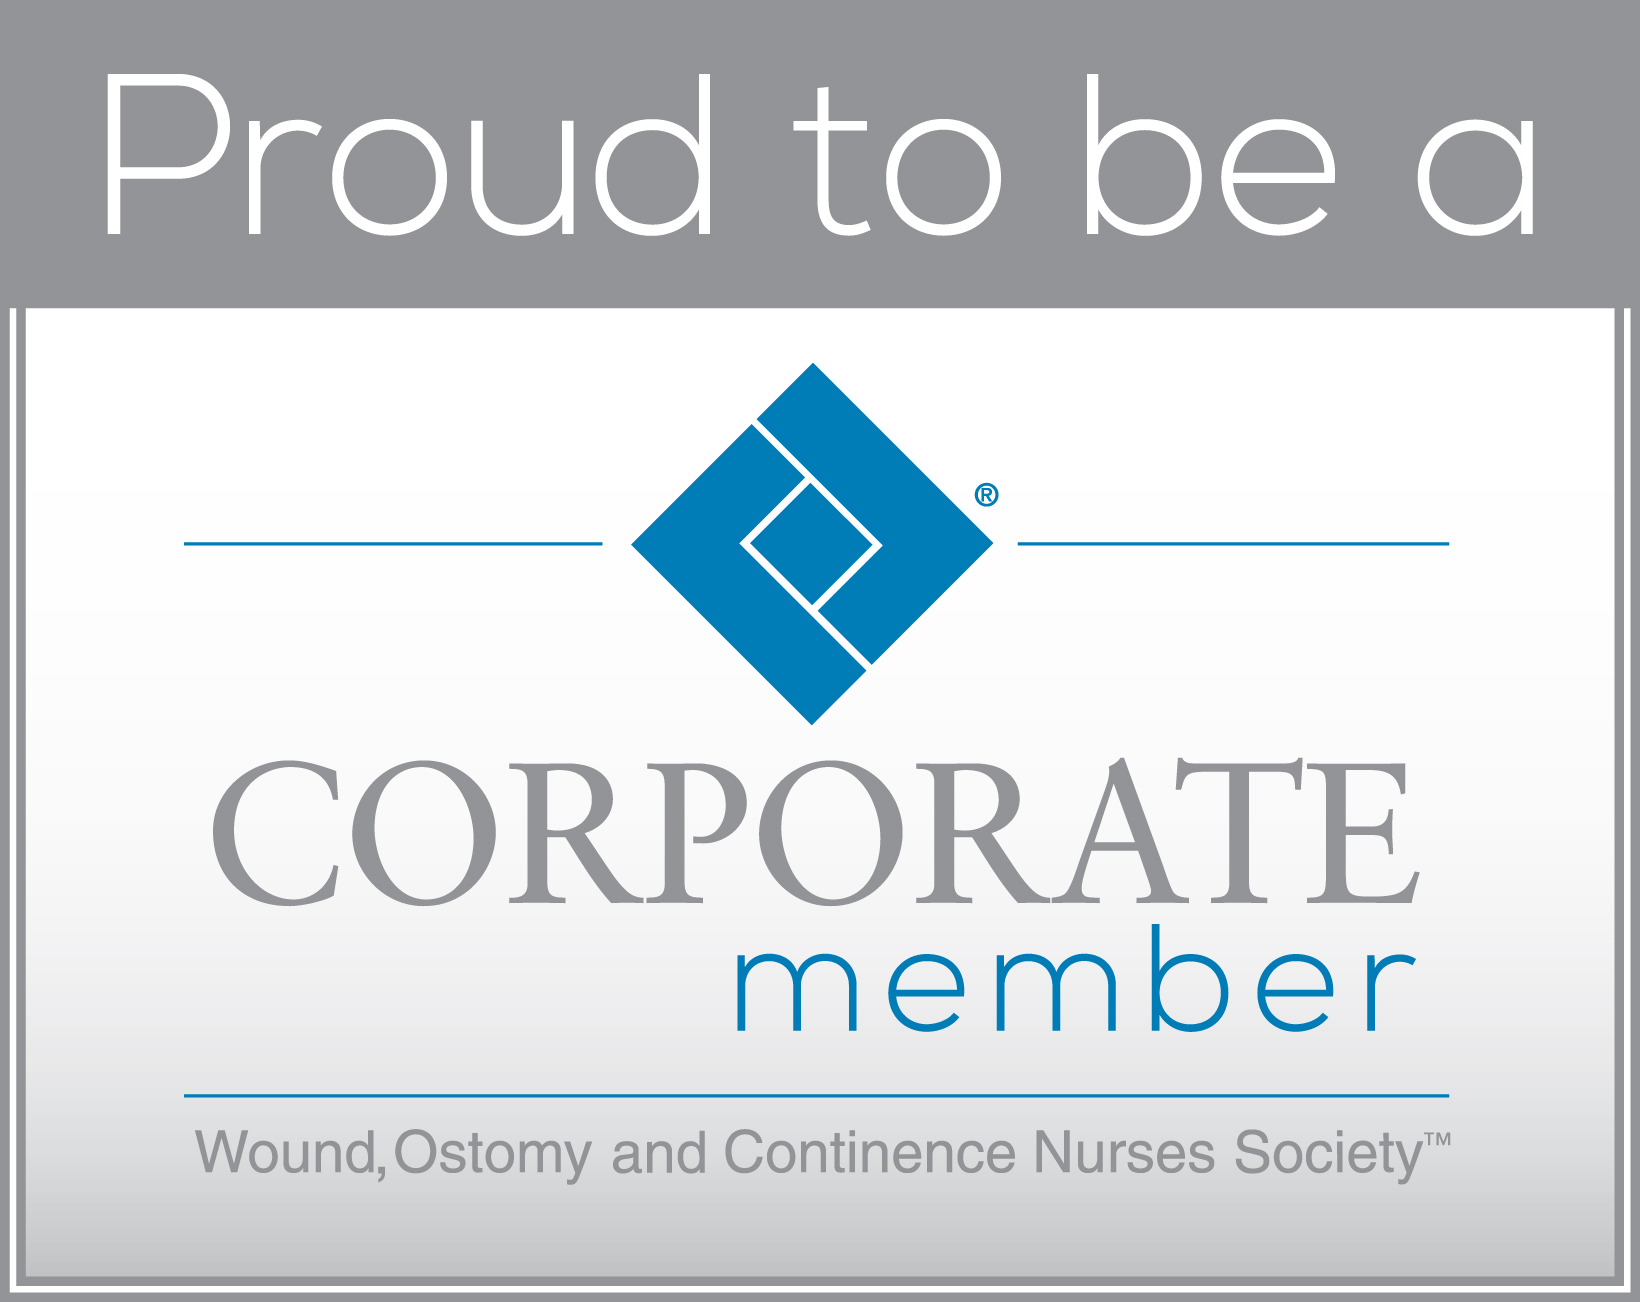 WOCN Corporate Member badge